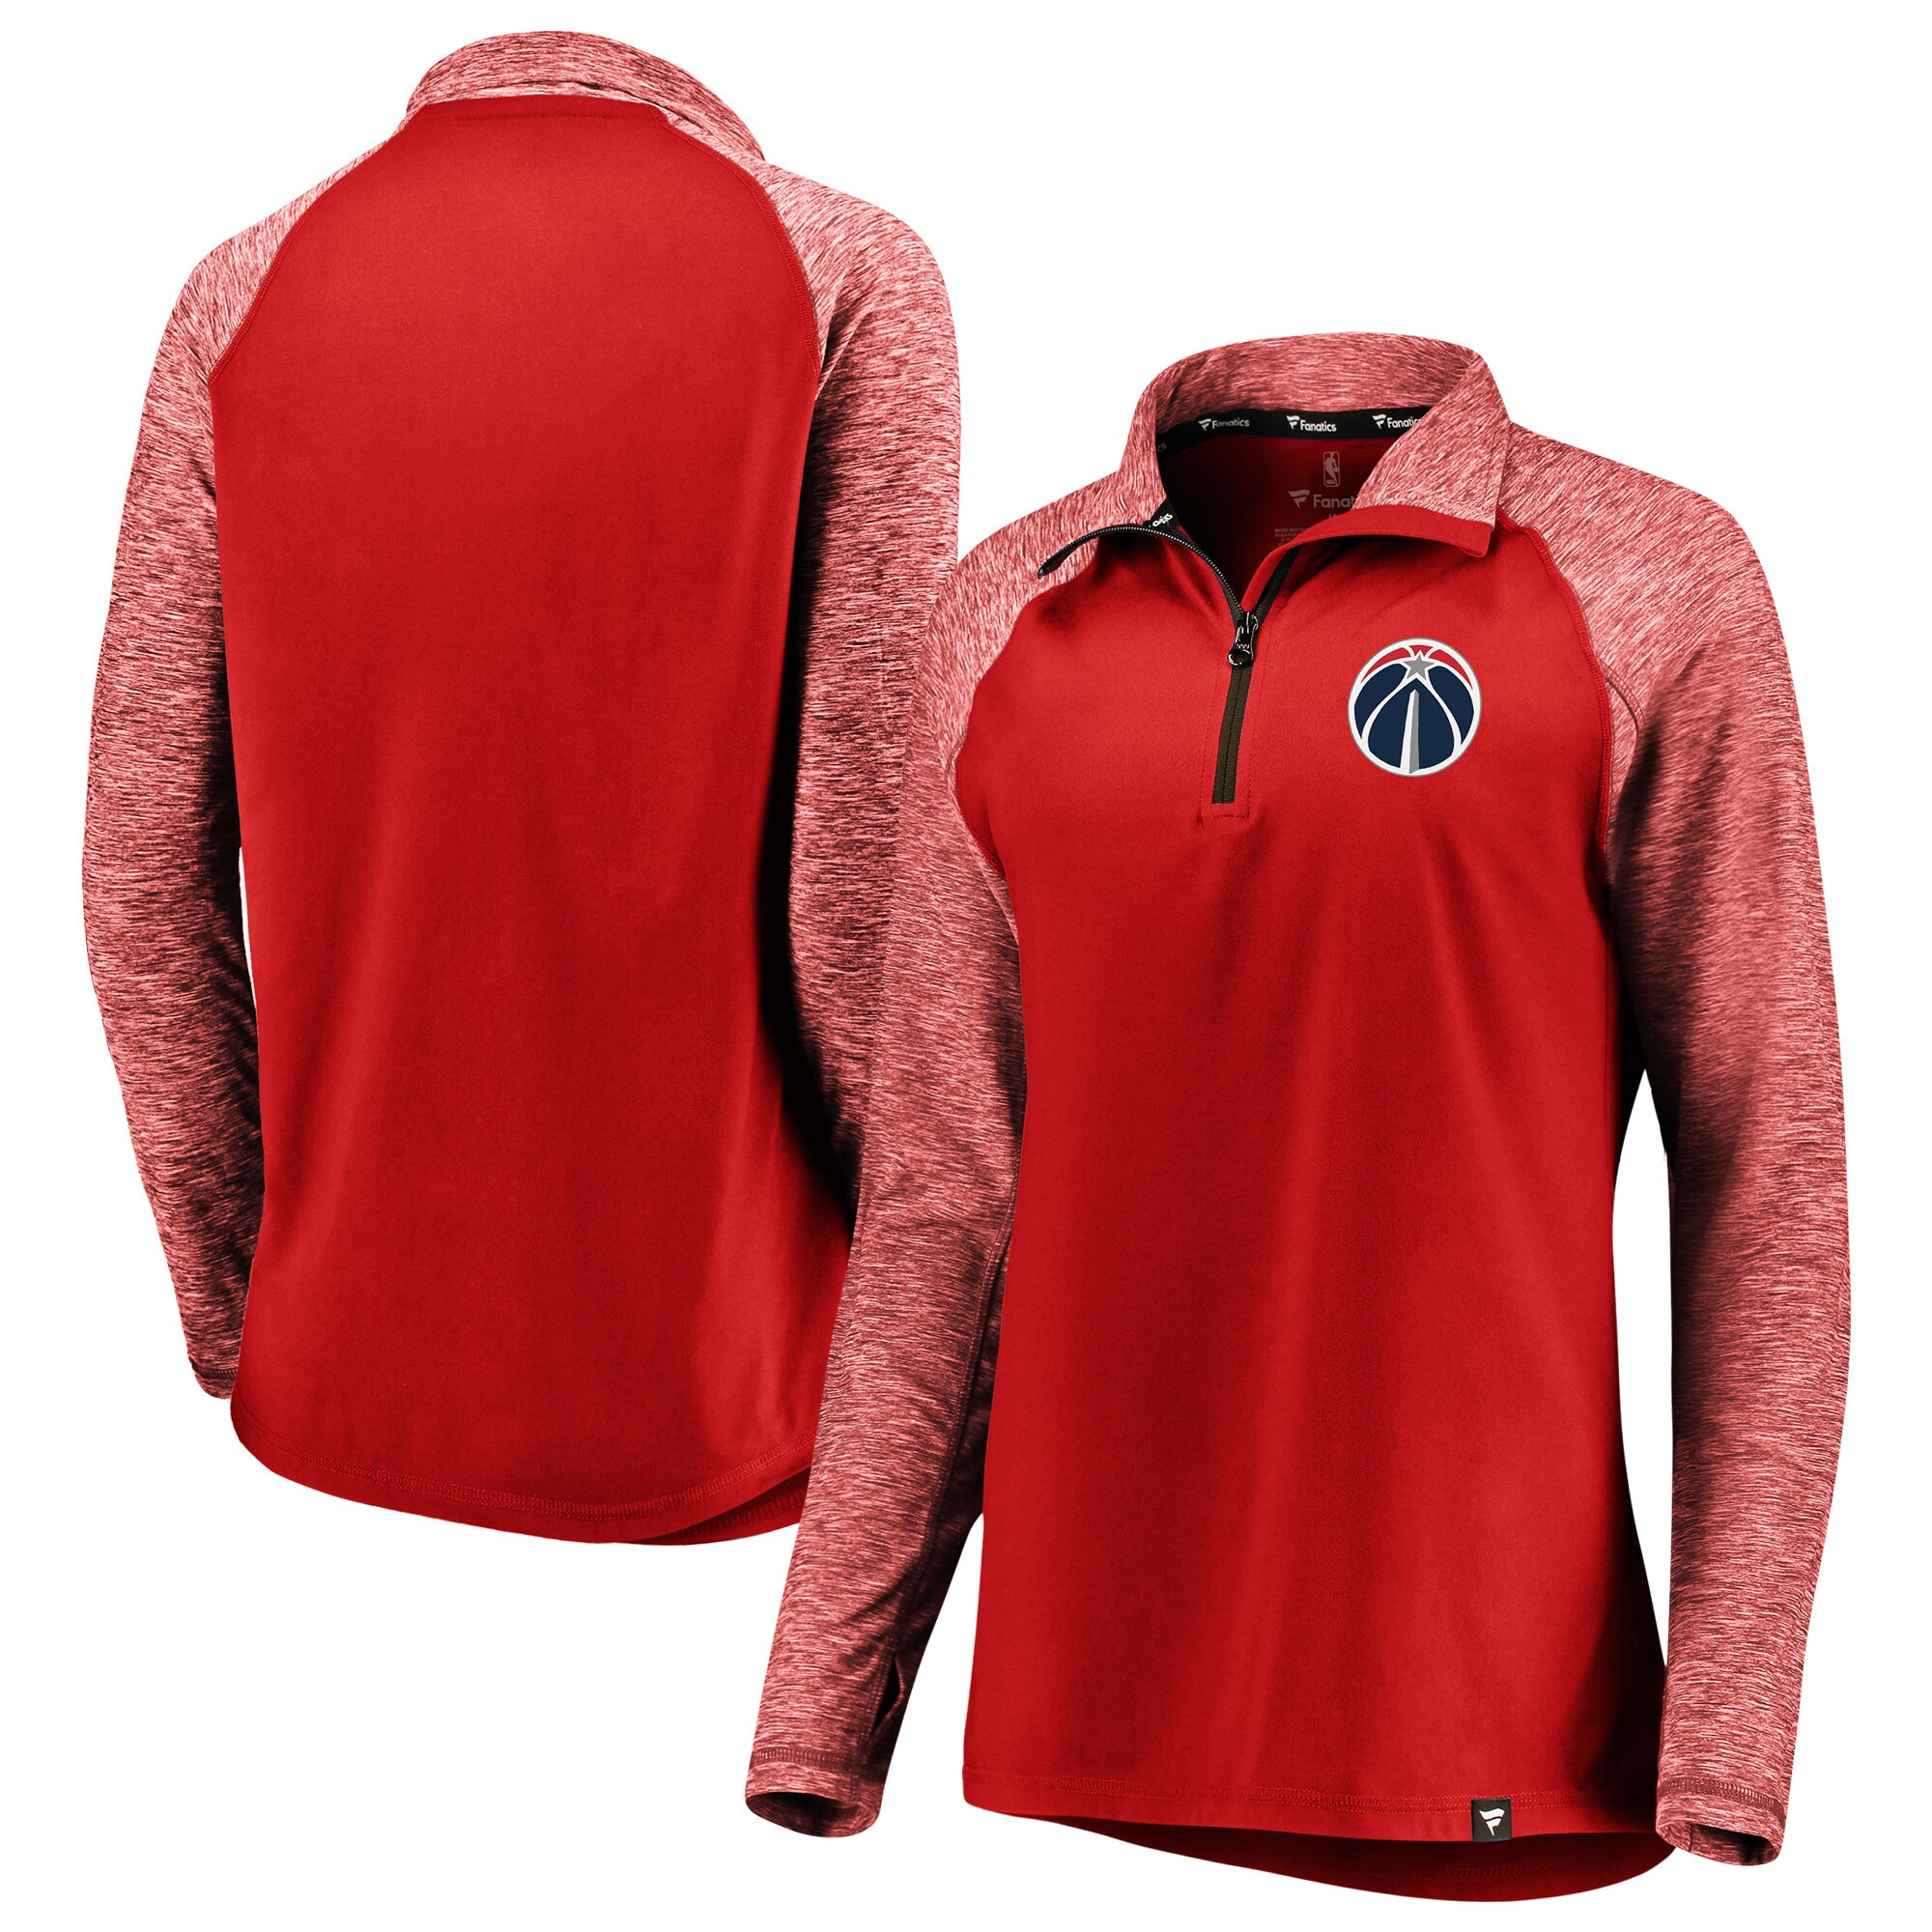 Washington Wizards Fanatics Branded Women's Made to Move Static Performance Raglan Sleeve Quarter-Zip Pullover Jacket - Red/Heathered Red